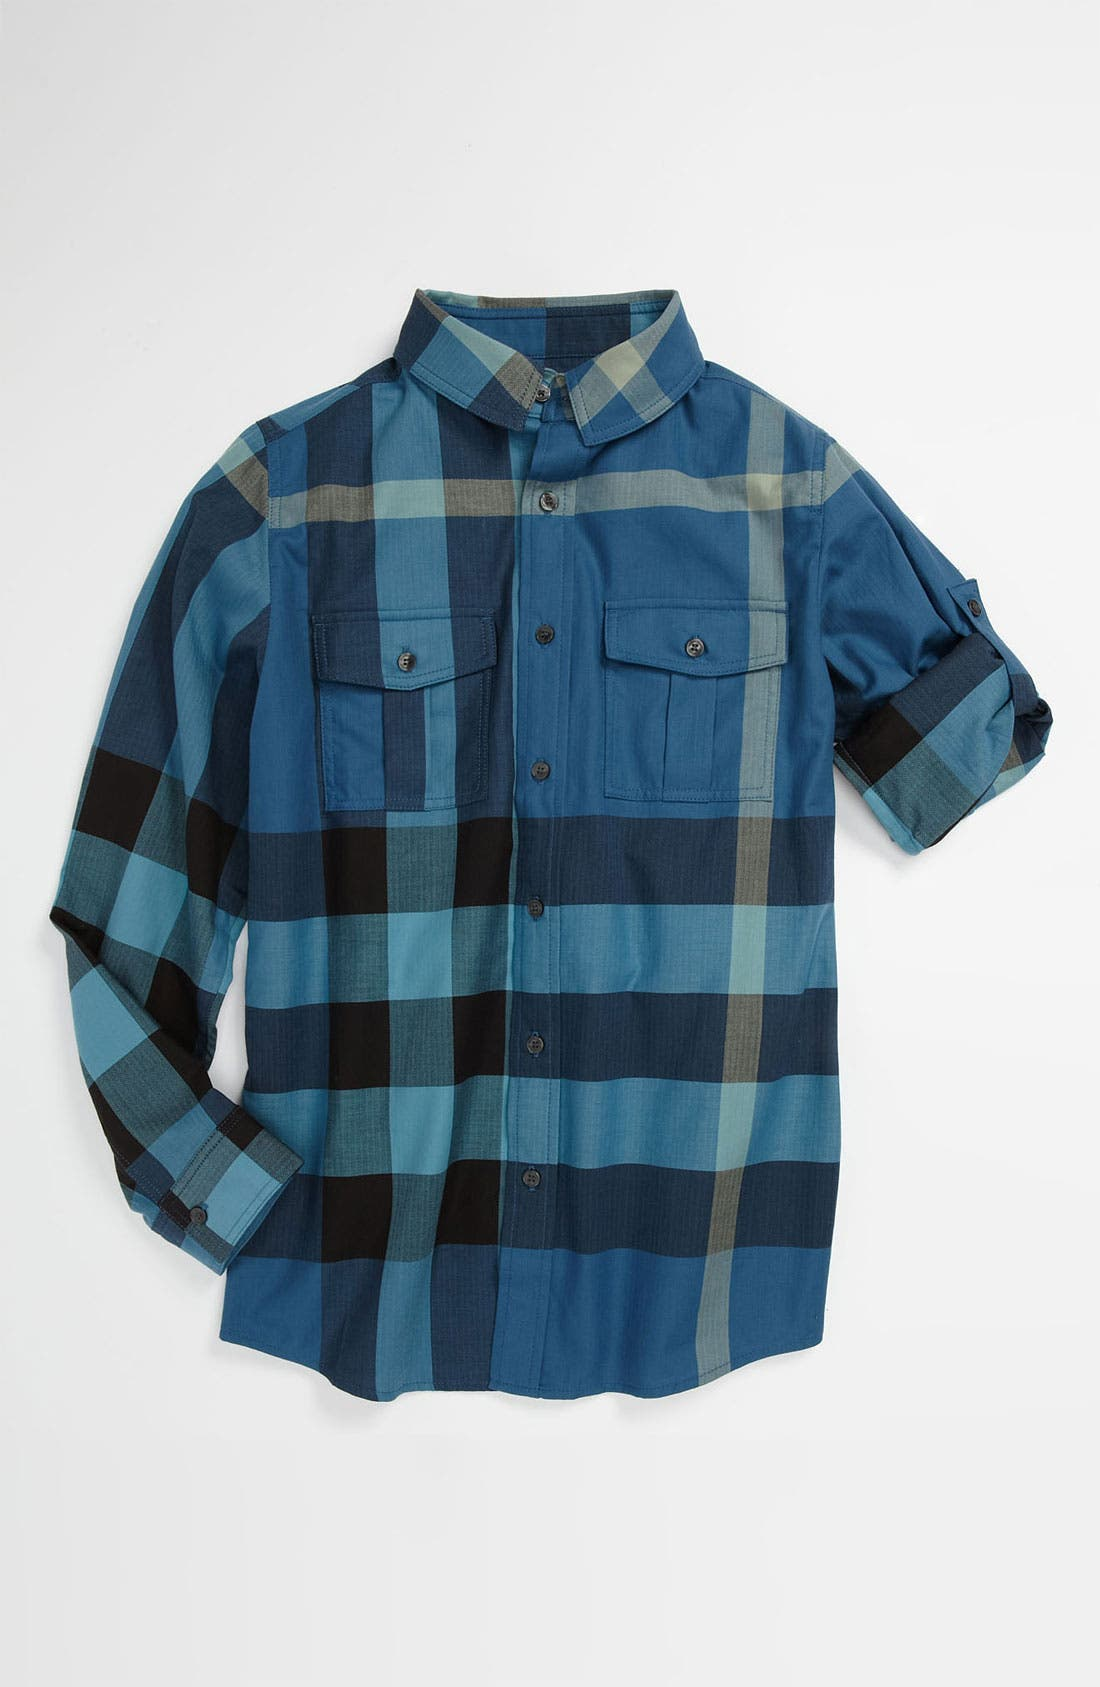 Main Image - Burberry 'Slough' Woven Shirt (Big Boys)